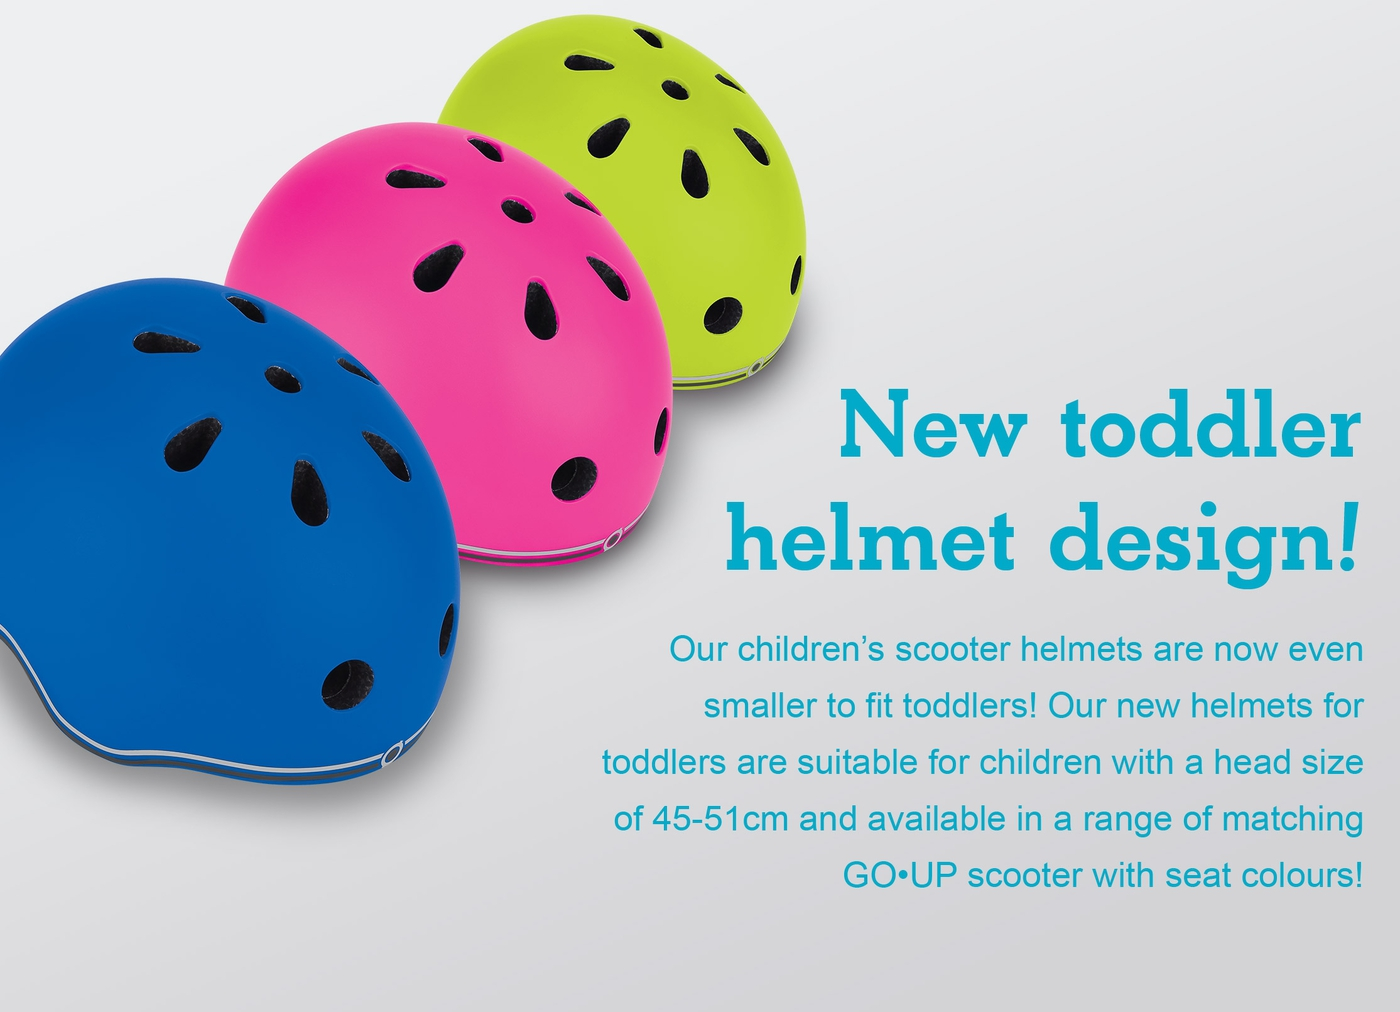 New toddler helmet design!